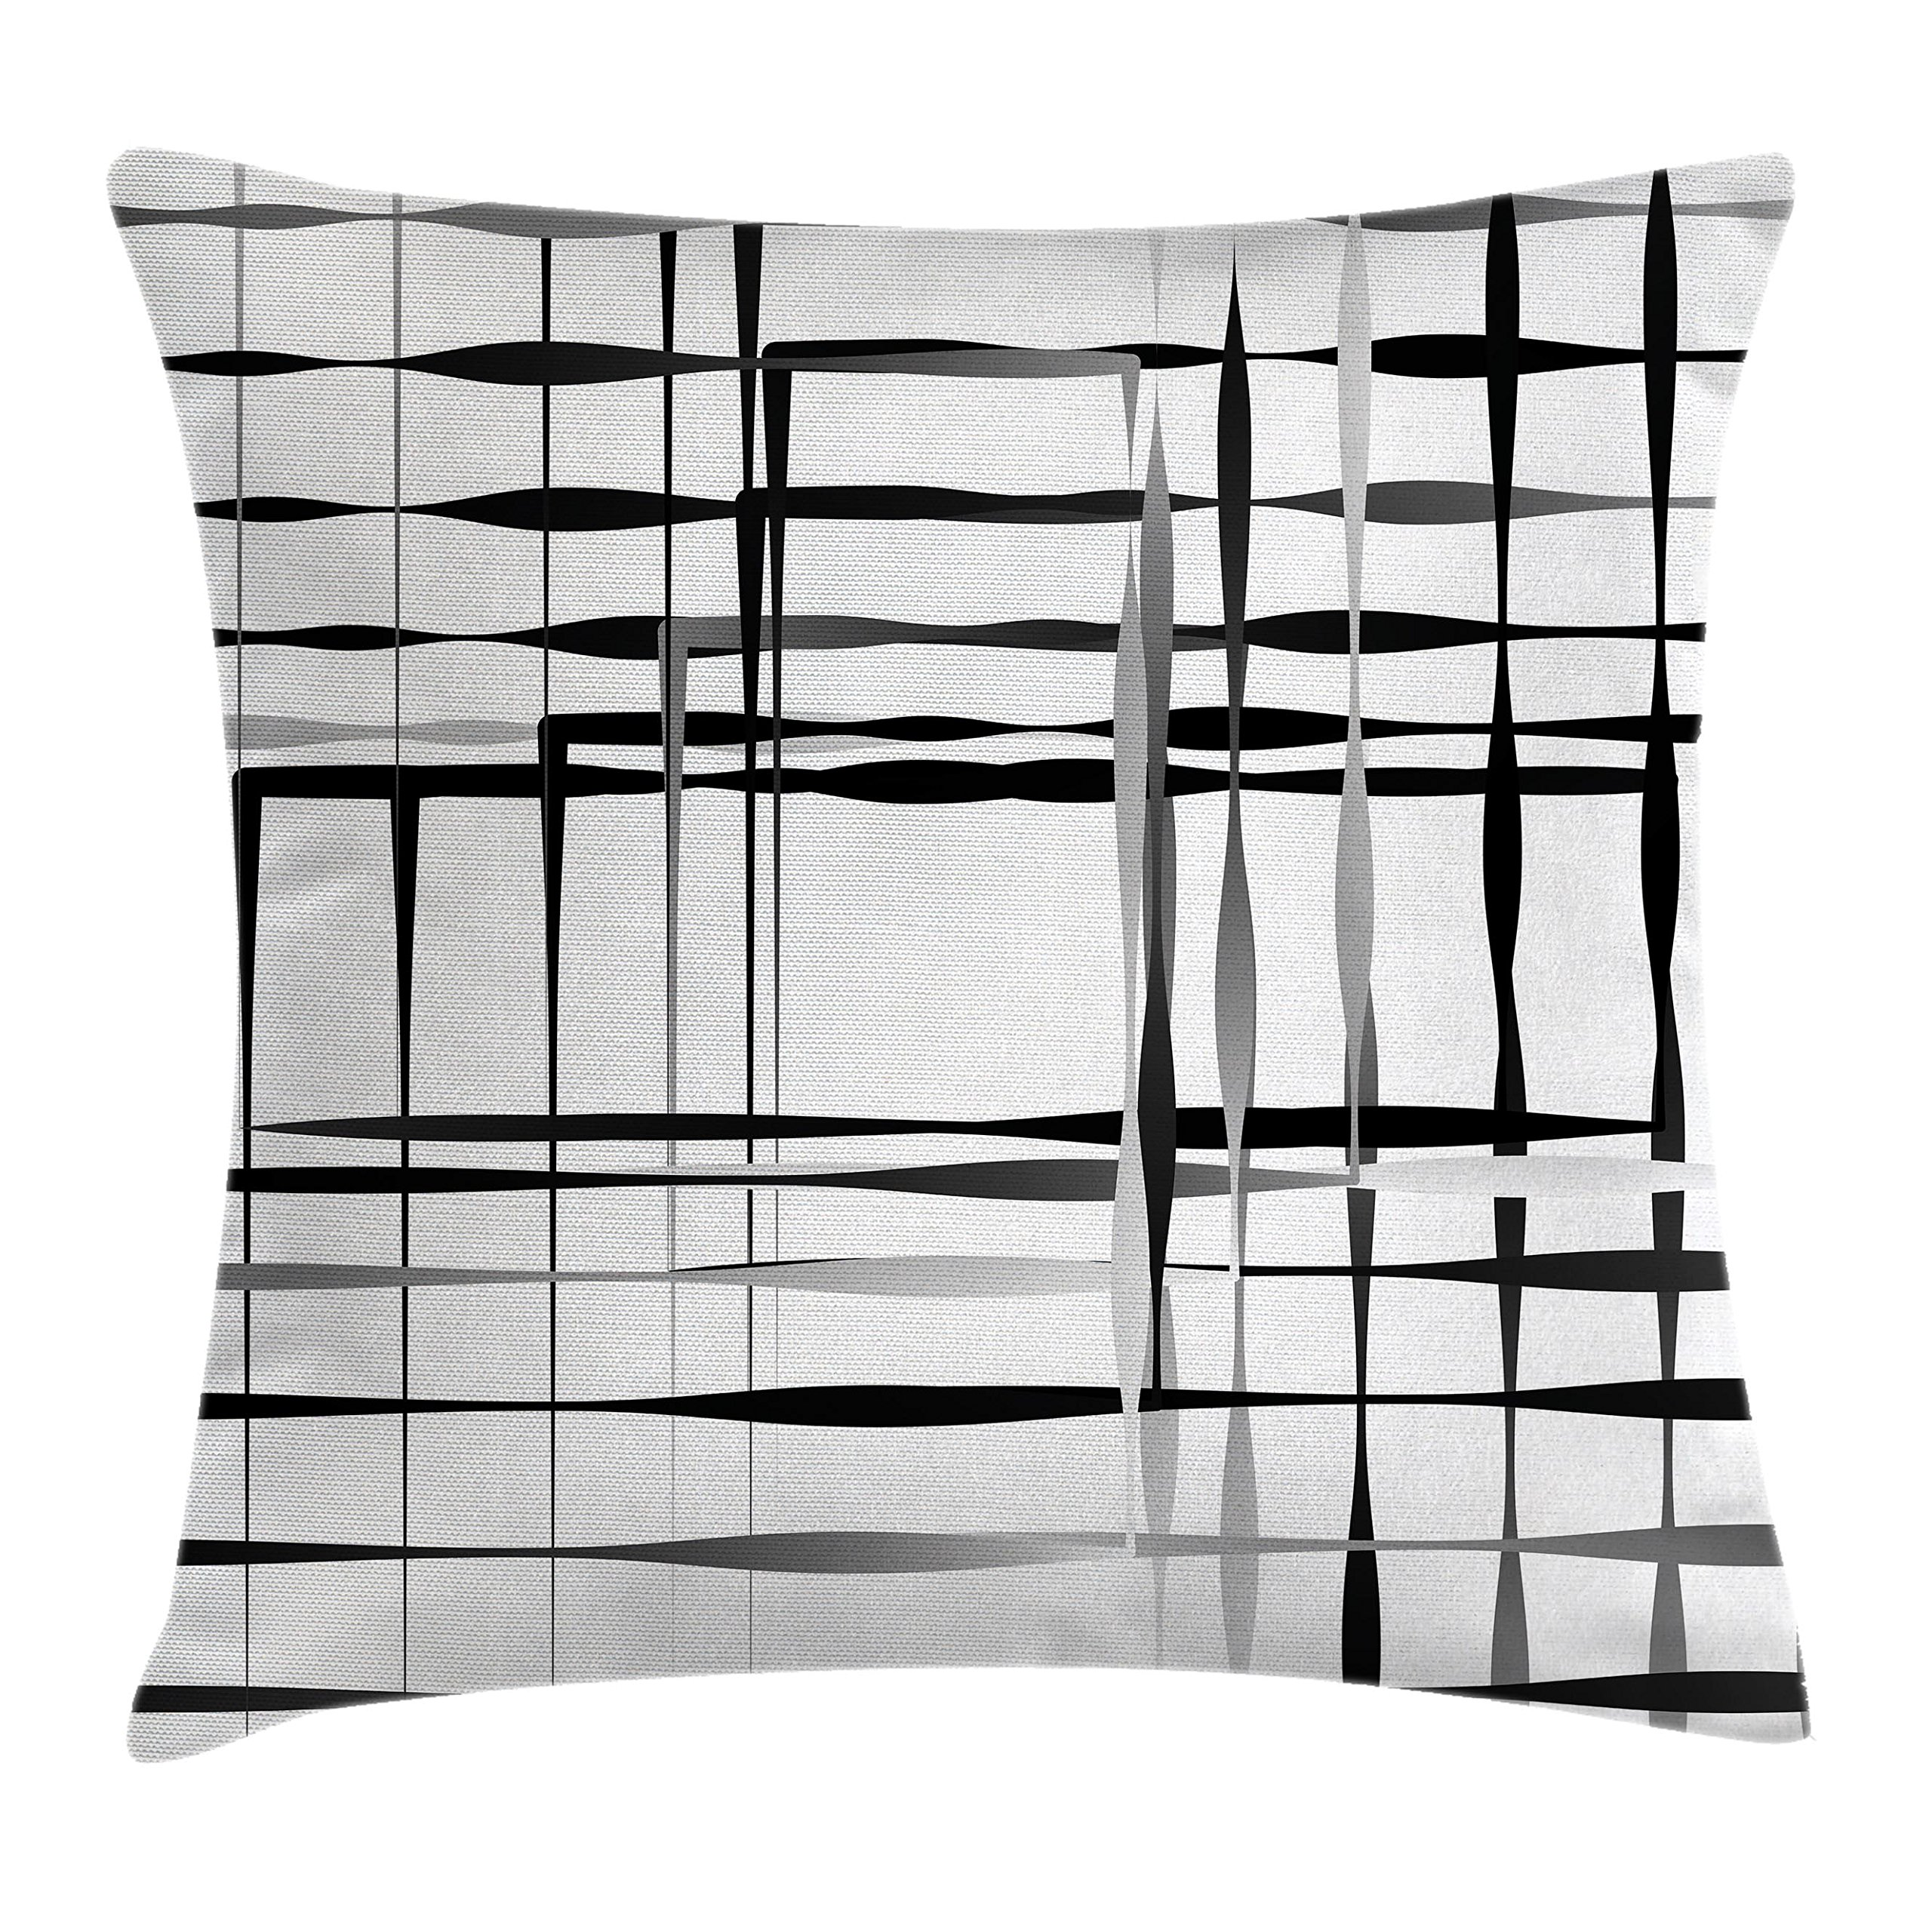 Ambesonne Modern Art Throw Pillow Cushion Cover, Minimalist Image with Simplistic Spaces and Spare Asymmetric Grids and Lines, Decorative Square Accent Pillow Case, 24'' X 24'', Black White by Ambesonne